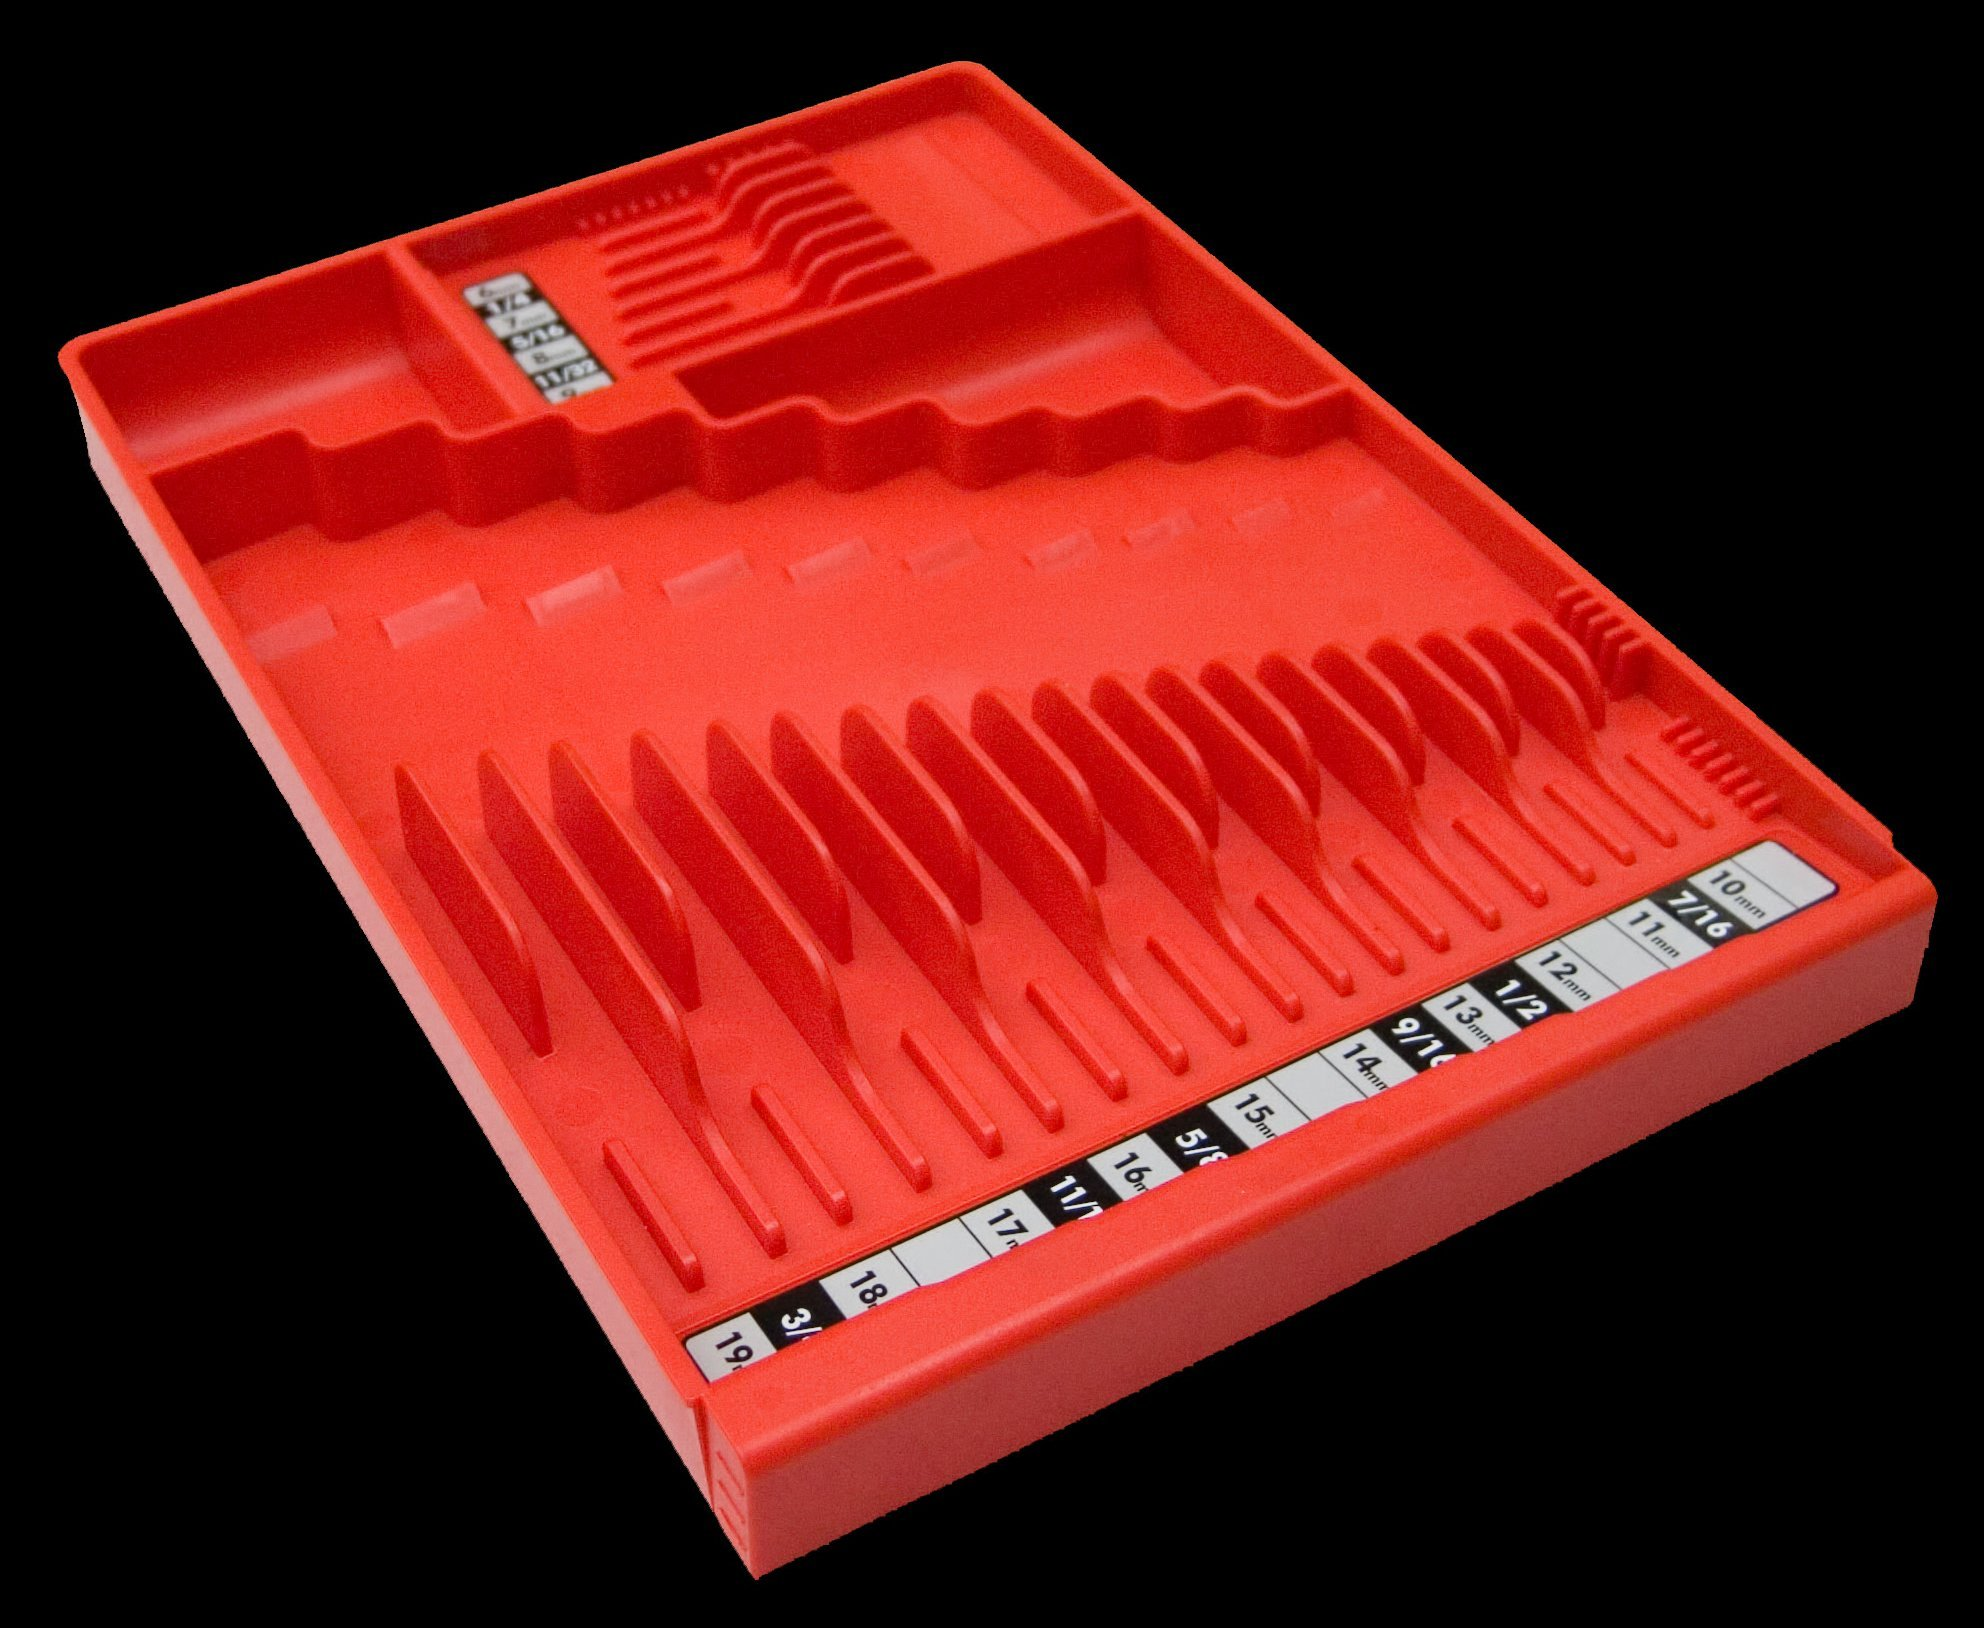 Tool Sorter Wrench Organizer - Red by Tool Sorter (Image #4)